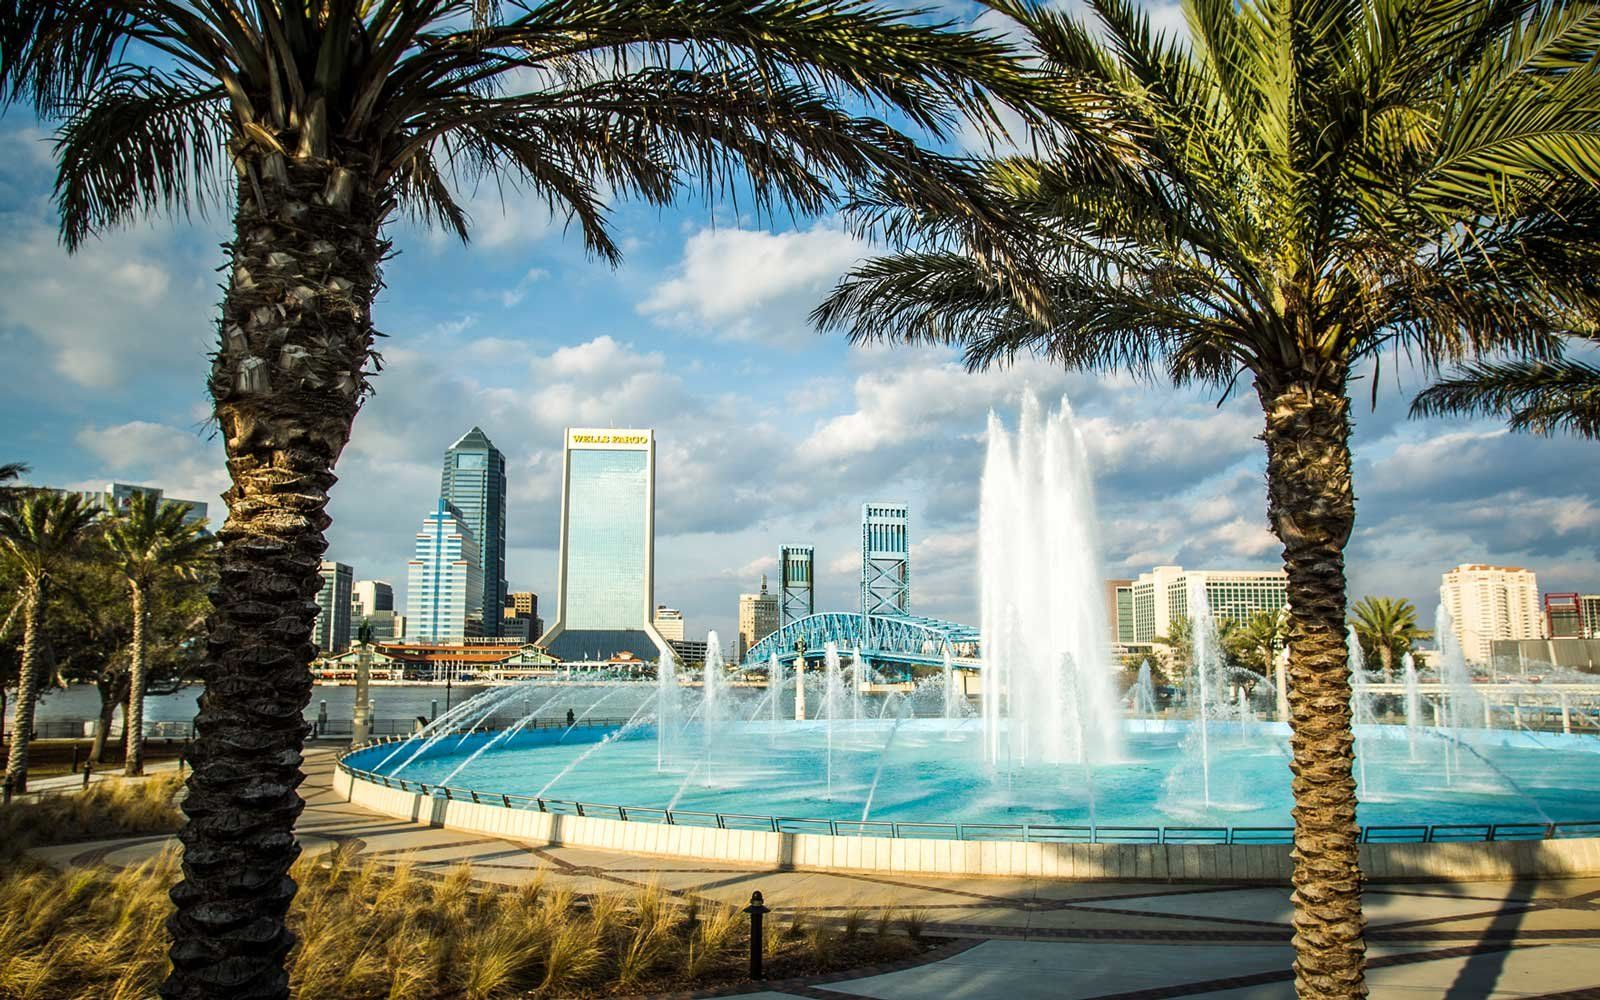 17 Things To Do In Jacksonville Florida 17 Fun Things To Do On Your Trip To Jacksonville Florida Florida Travel Jacksonville Florida Florida Vacation